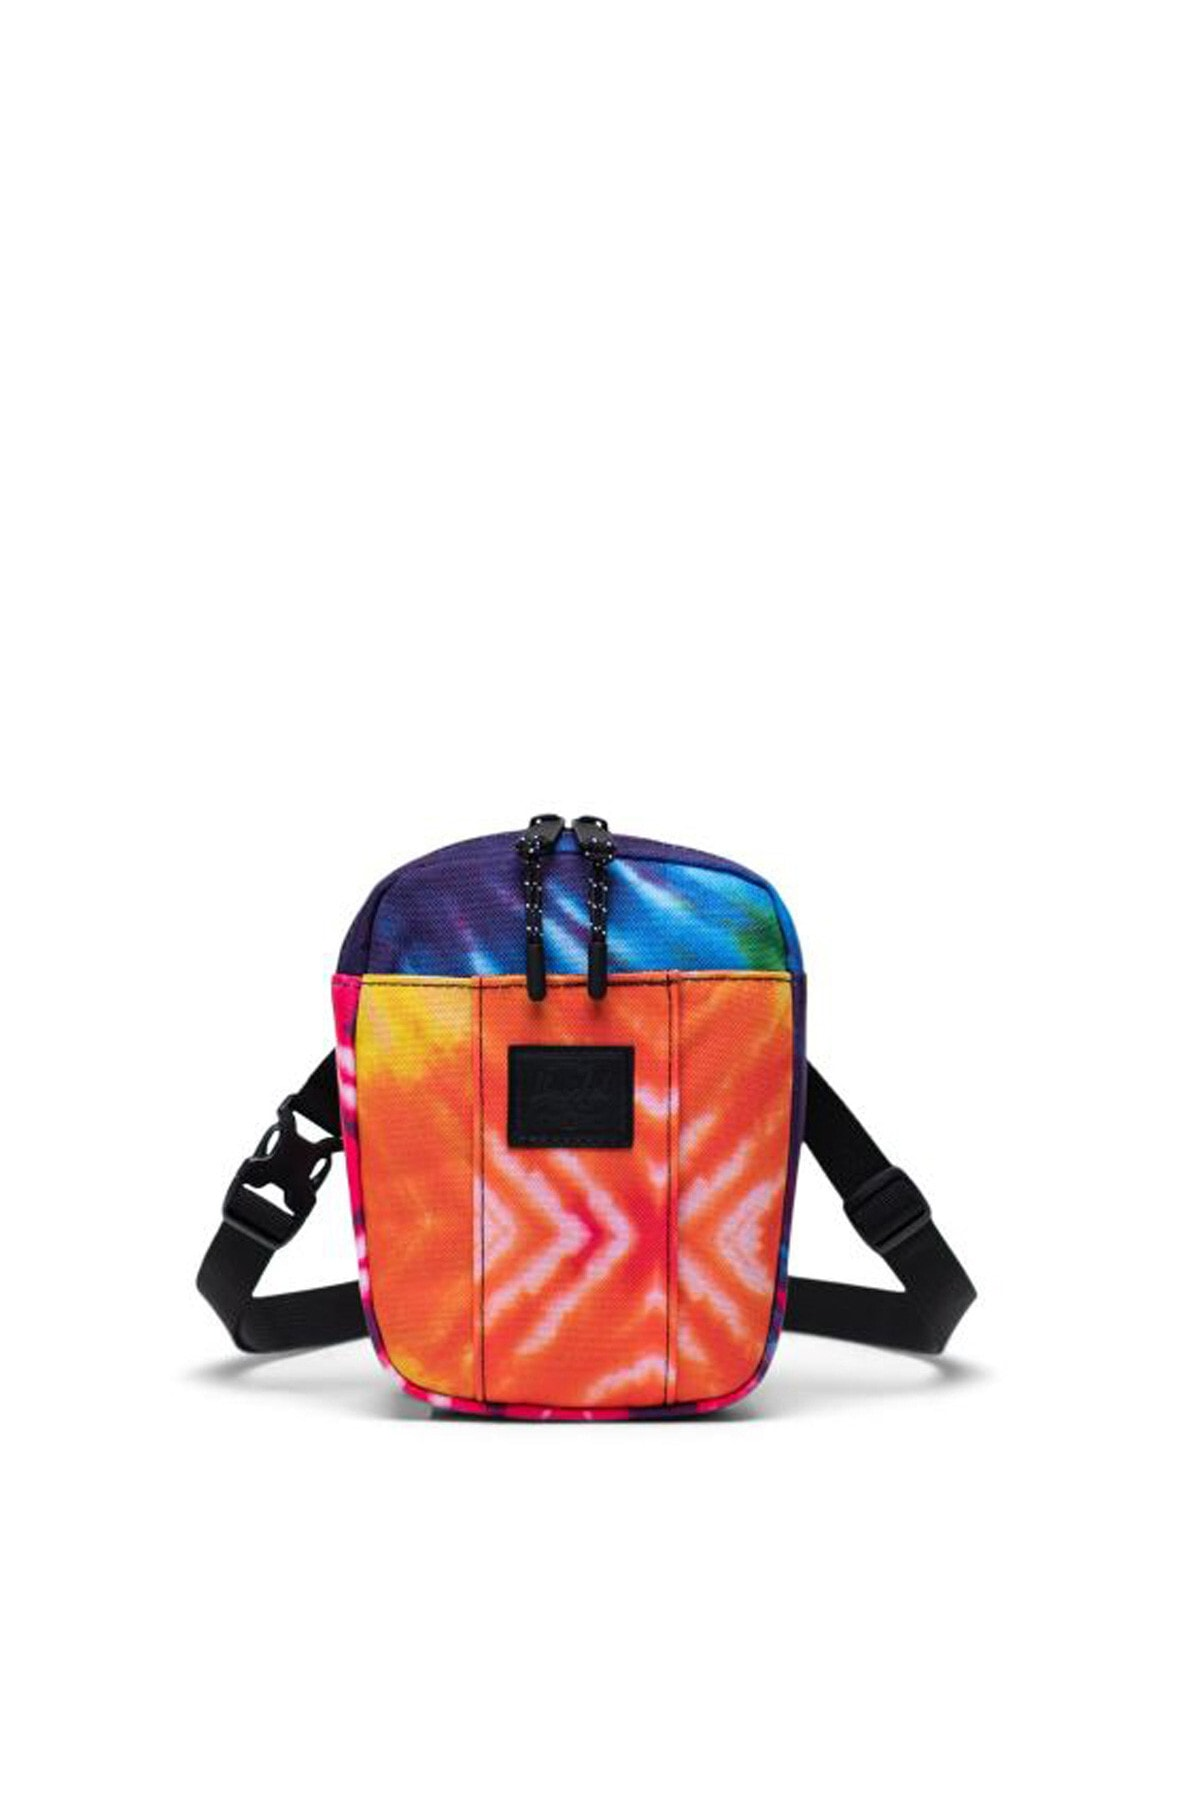 Herschel Supply Co. Herschel Cruz Rainbow Tie Dye Omuz Çantası 10510-03561-os